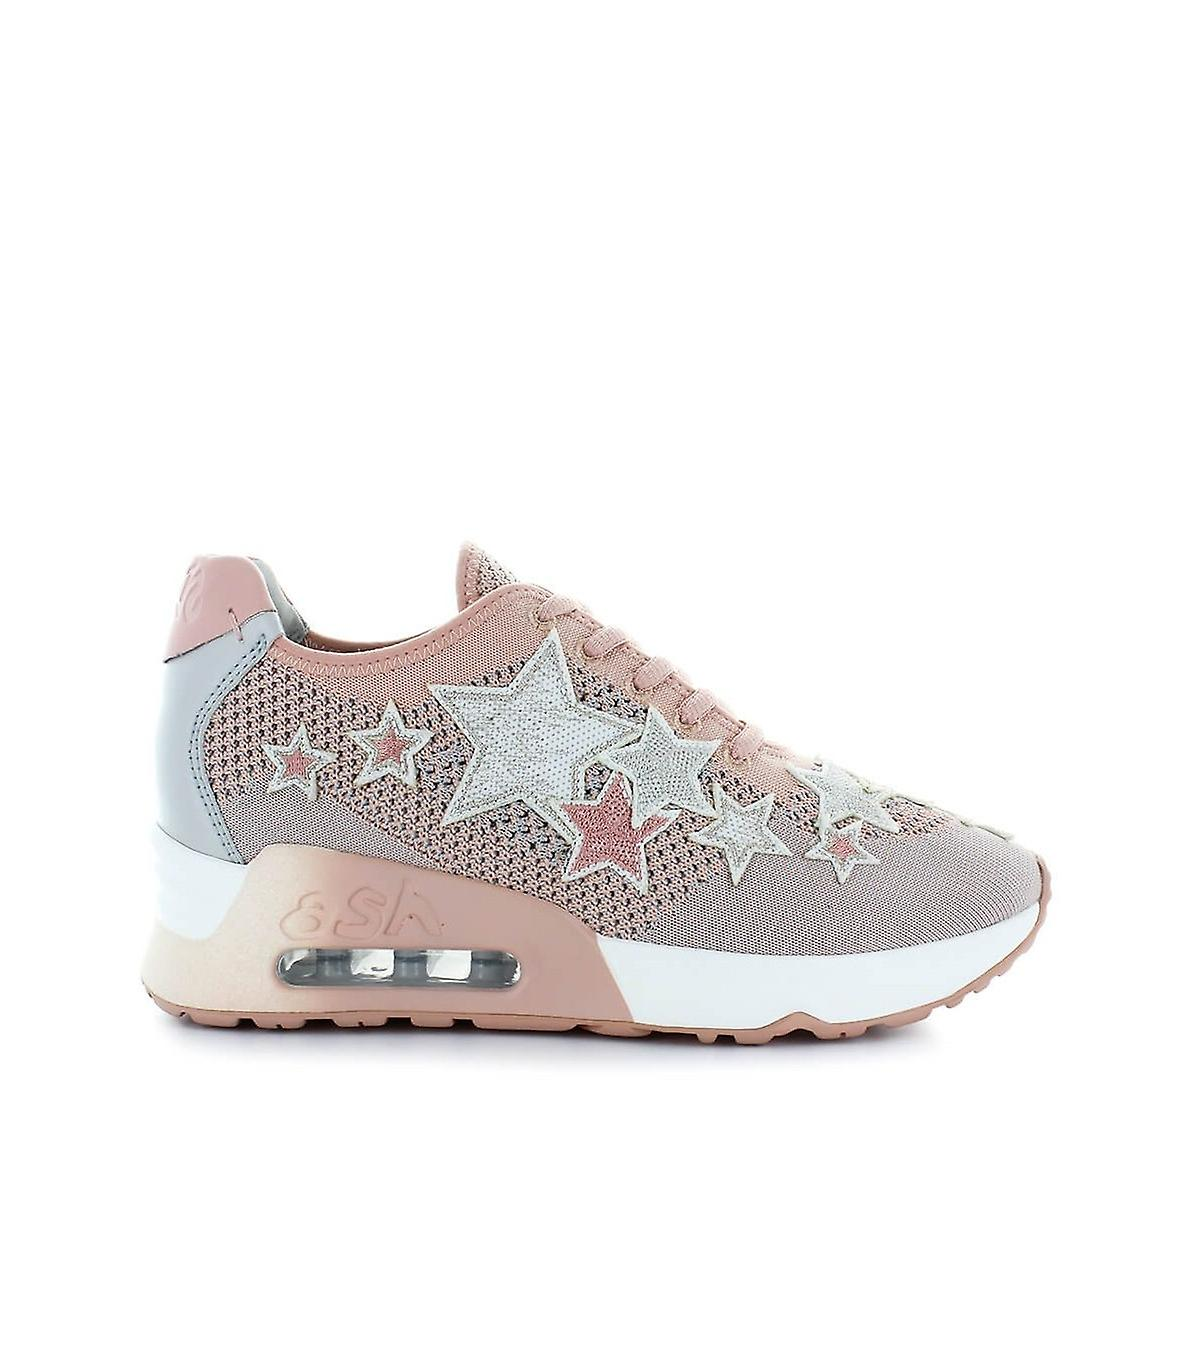 ASH LUCKY STAR NUDE PINK SNEAKER